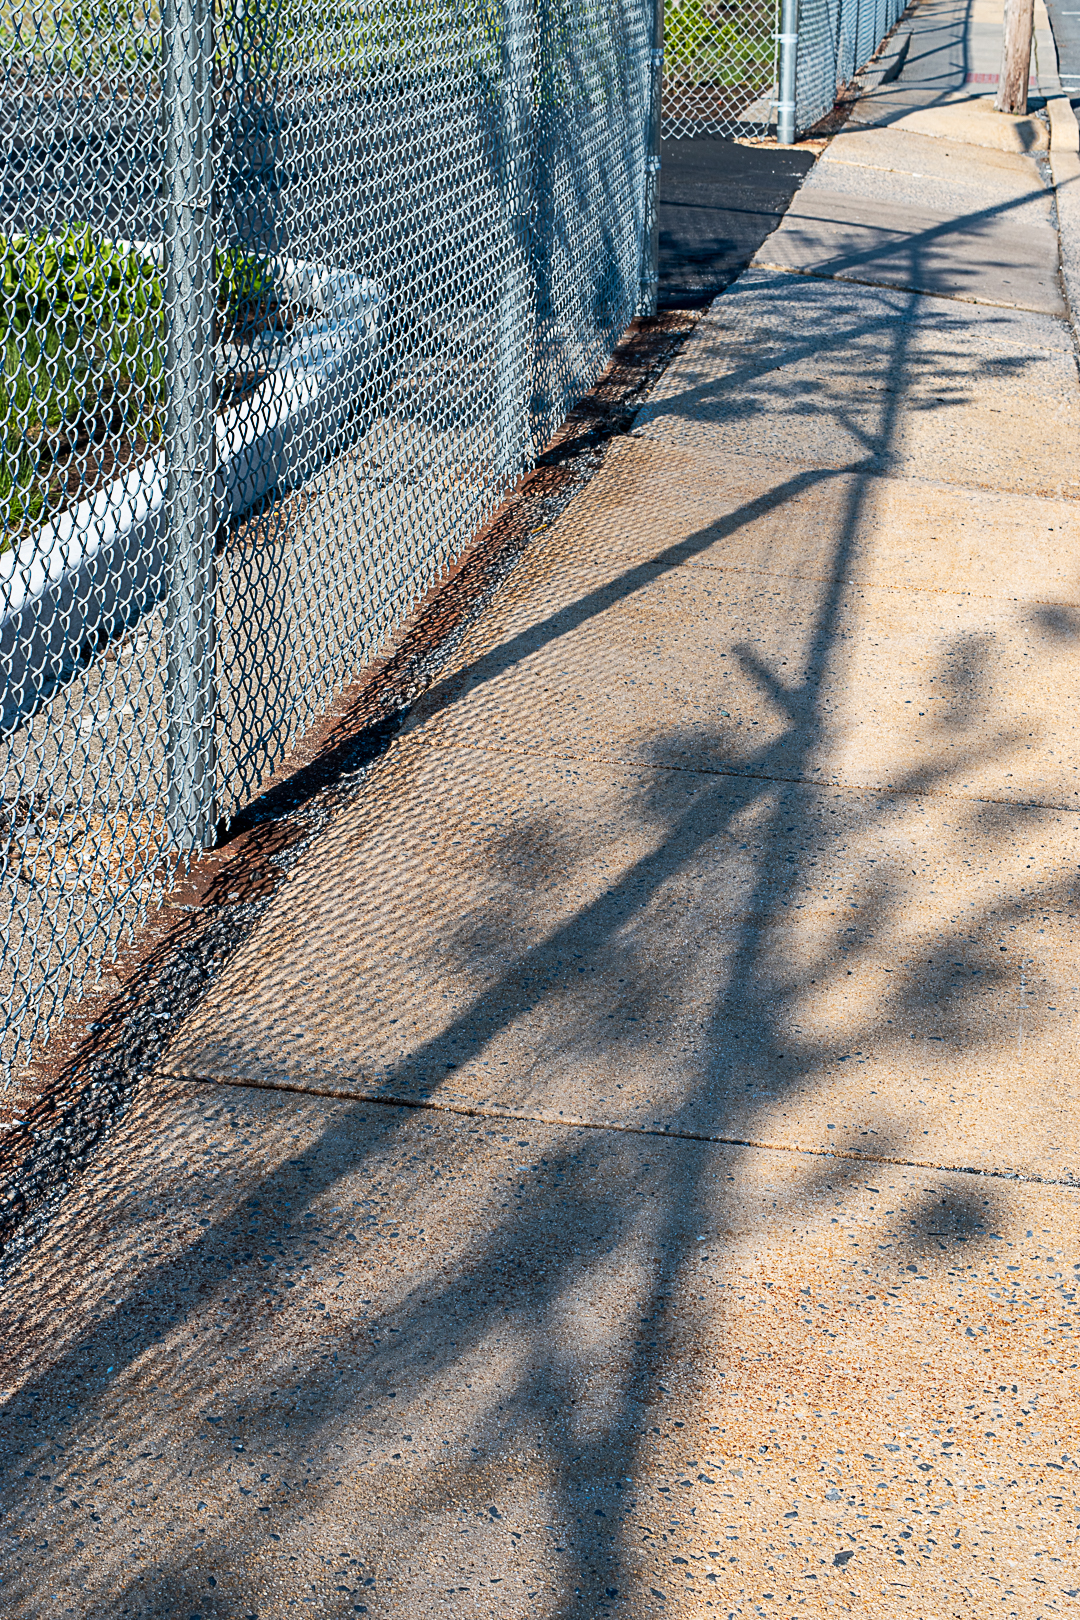 Fence & plant shadow on sidewalk